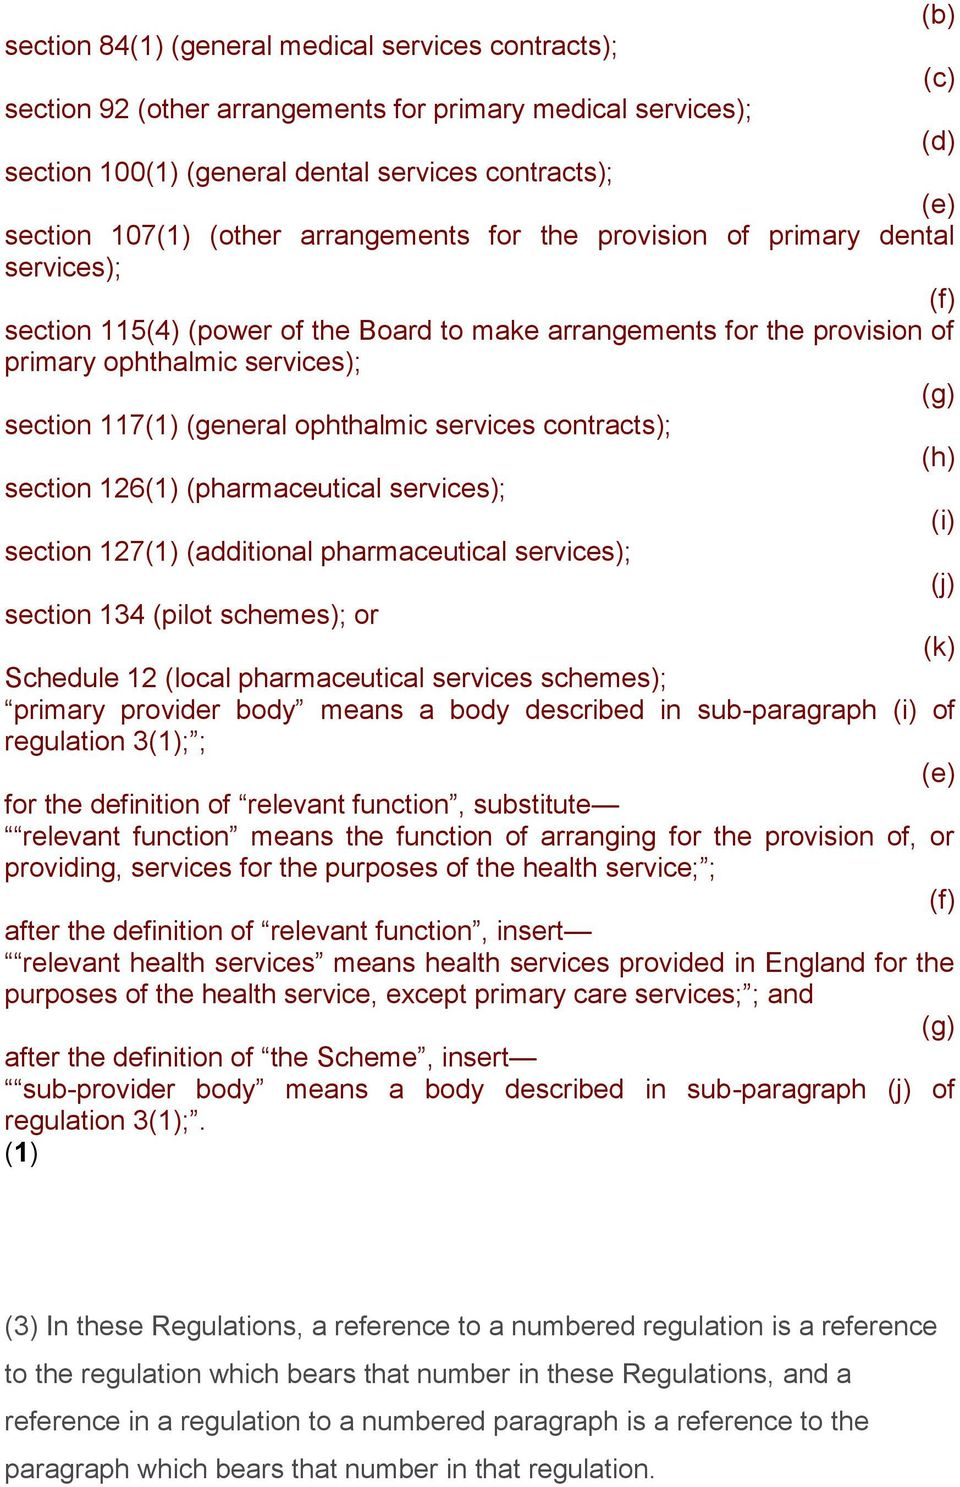 ophthalmic services contracts); (h) section 126(1) (pharmaceutical services); section 127(1) (additional pharmaceutical services); (j) section 134 (pilot schemes); or (k) Schedule 12 (local